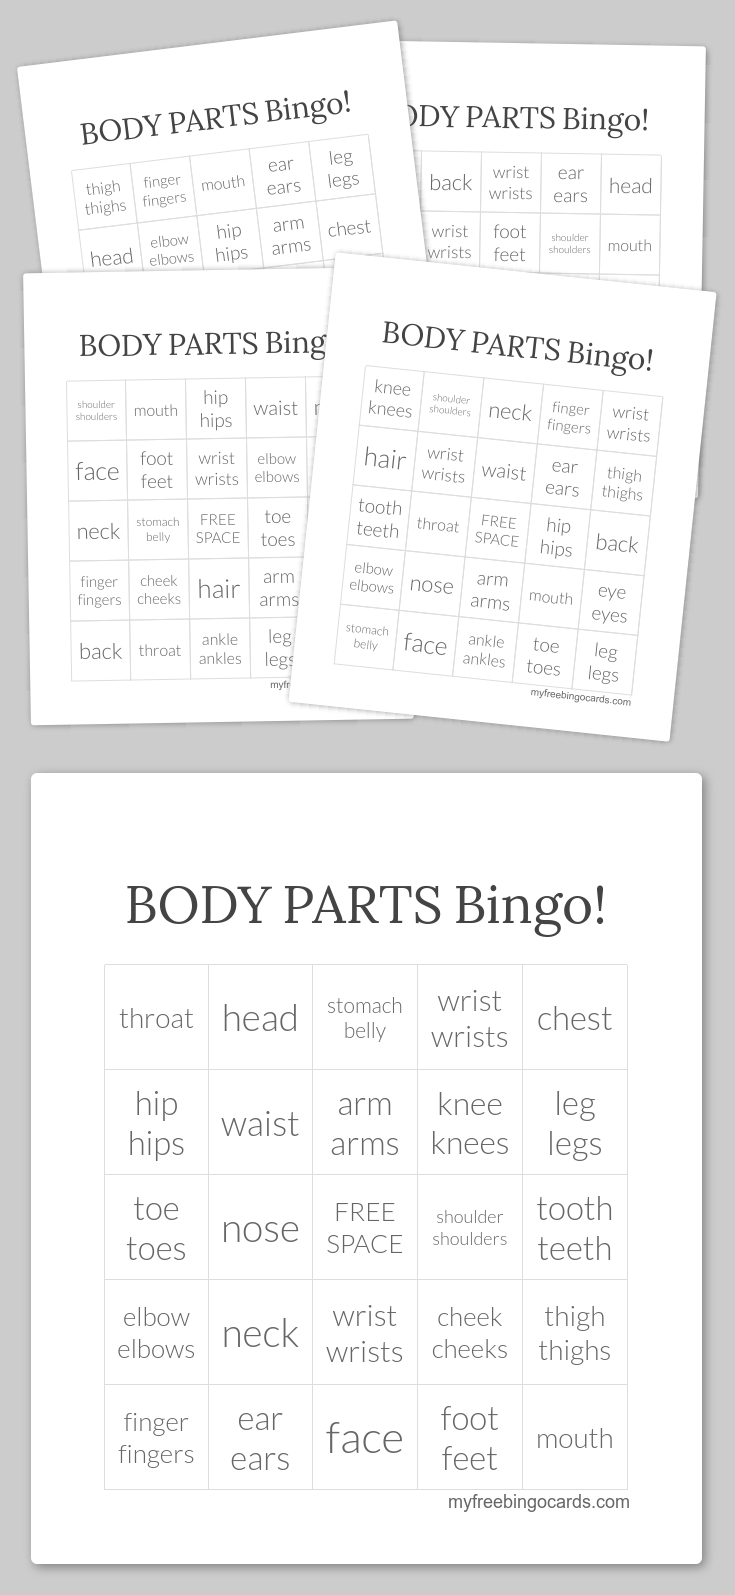 Body Parts Bingo! - 30 Cards And Callers Card In Pdf